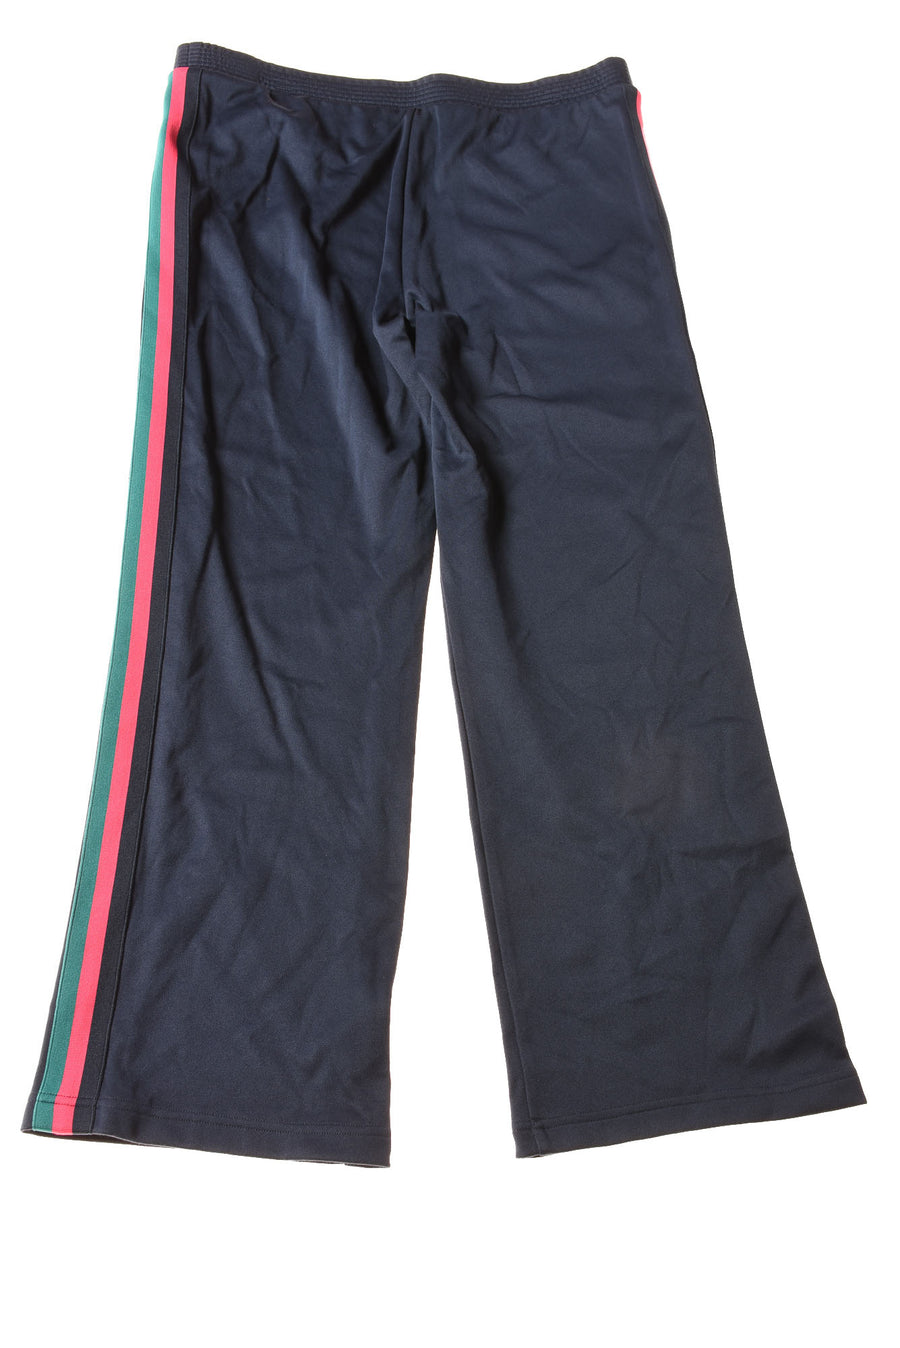 NEW Fila Sport Women's Pants X-Large Navy / Striped